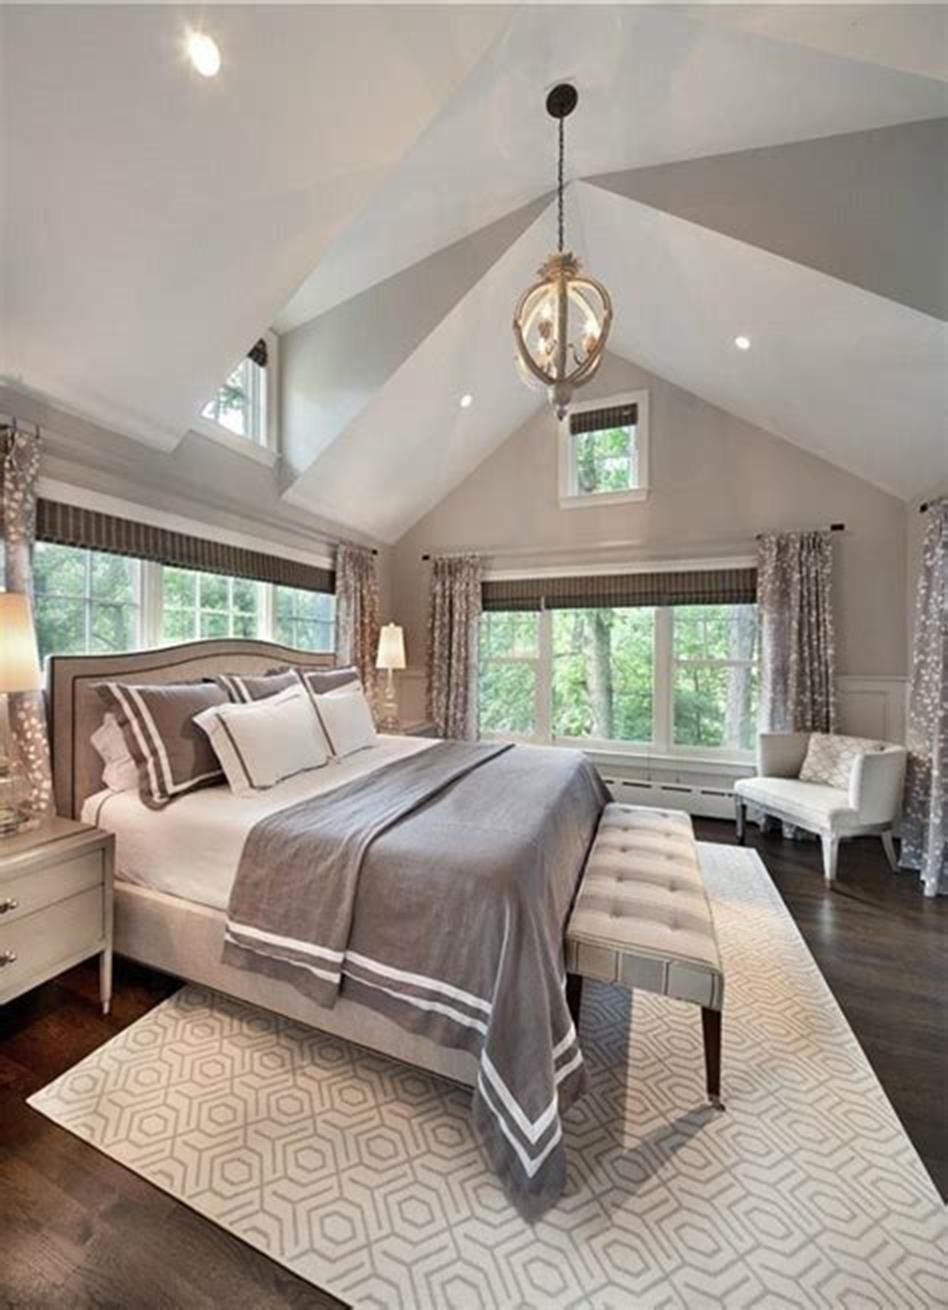 30 Romantic Cozy Master Bedroom Decorating Ideas 2019 52 Master